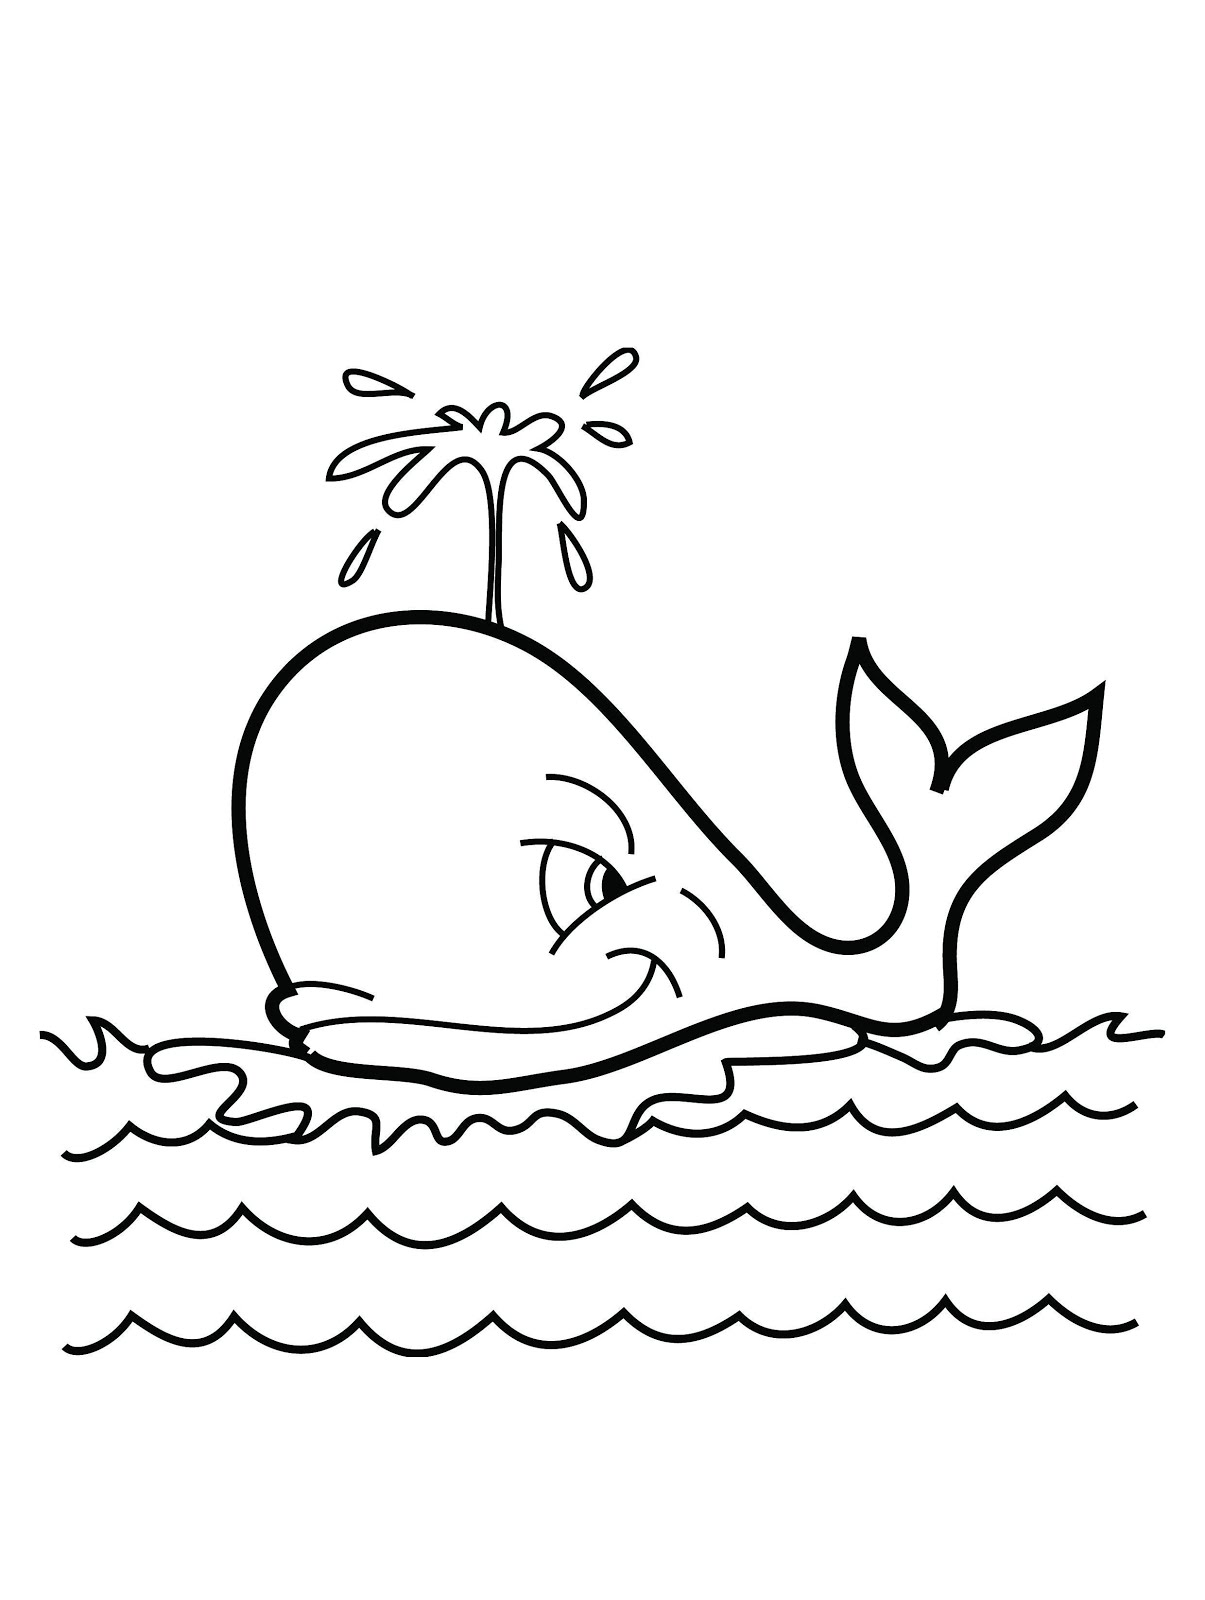 adorable whale ocean animals coloring pages best coloring pages